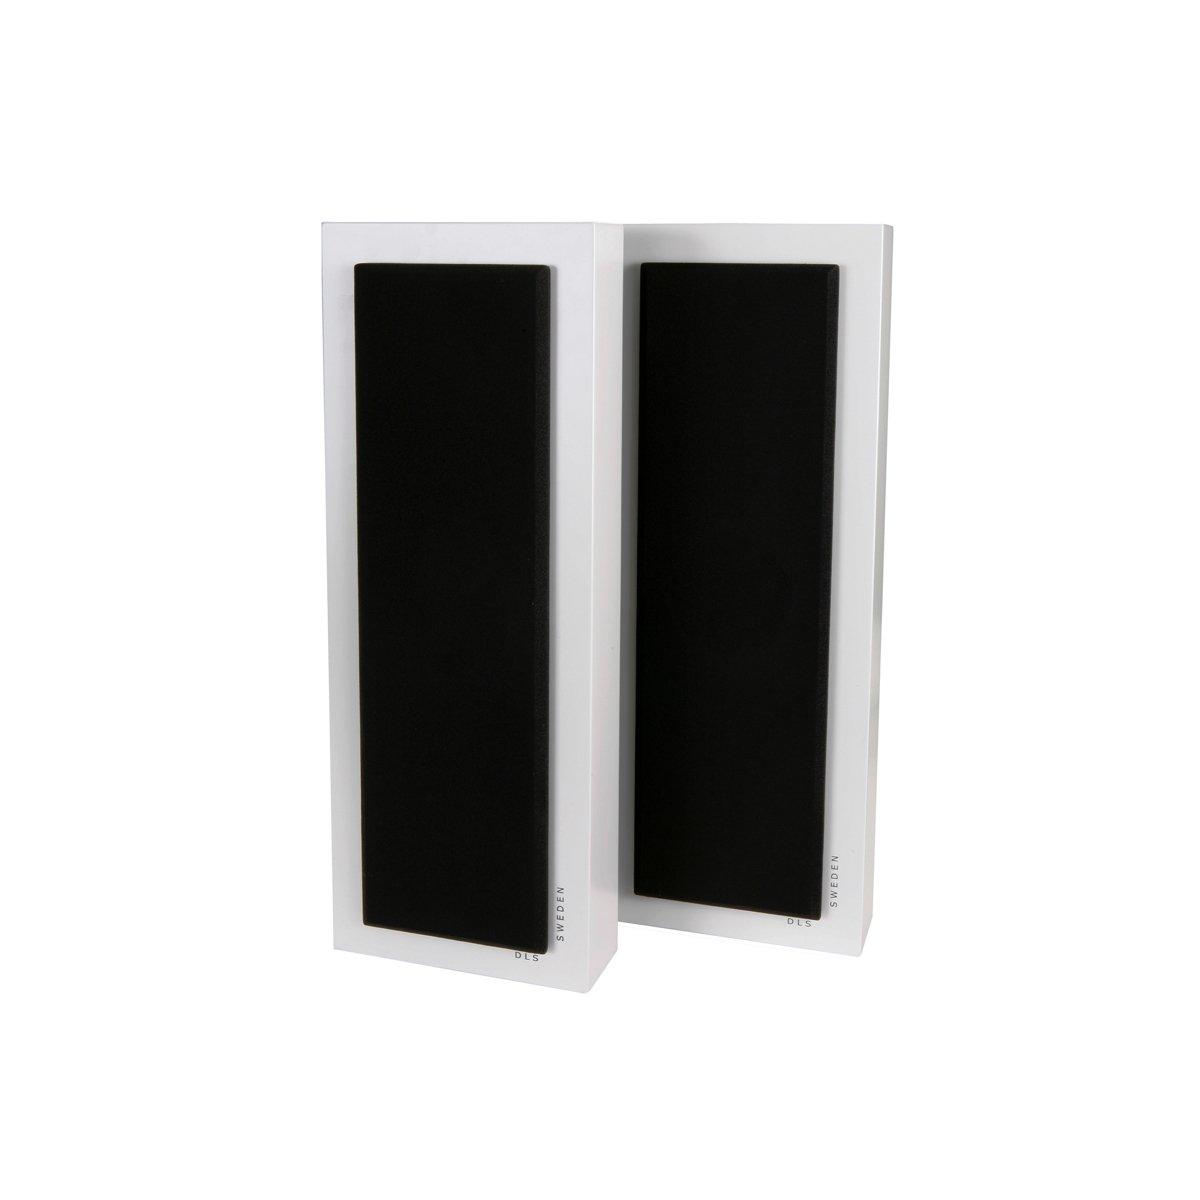 DLS Flatbox Slim Large On wall speaker - Pair, DLS, On Wall Speaker - Auratech LLC